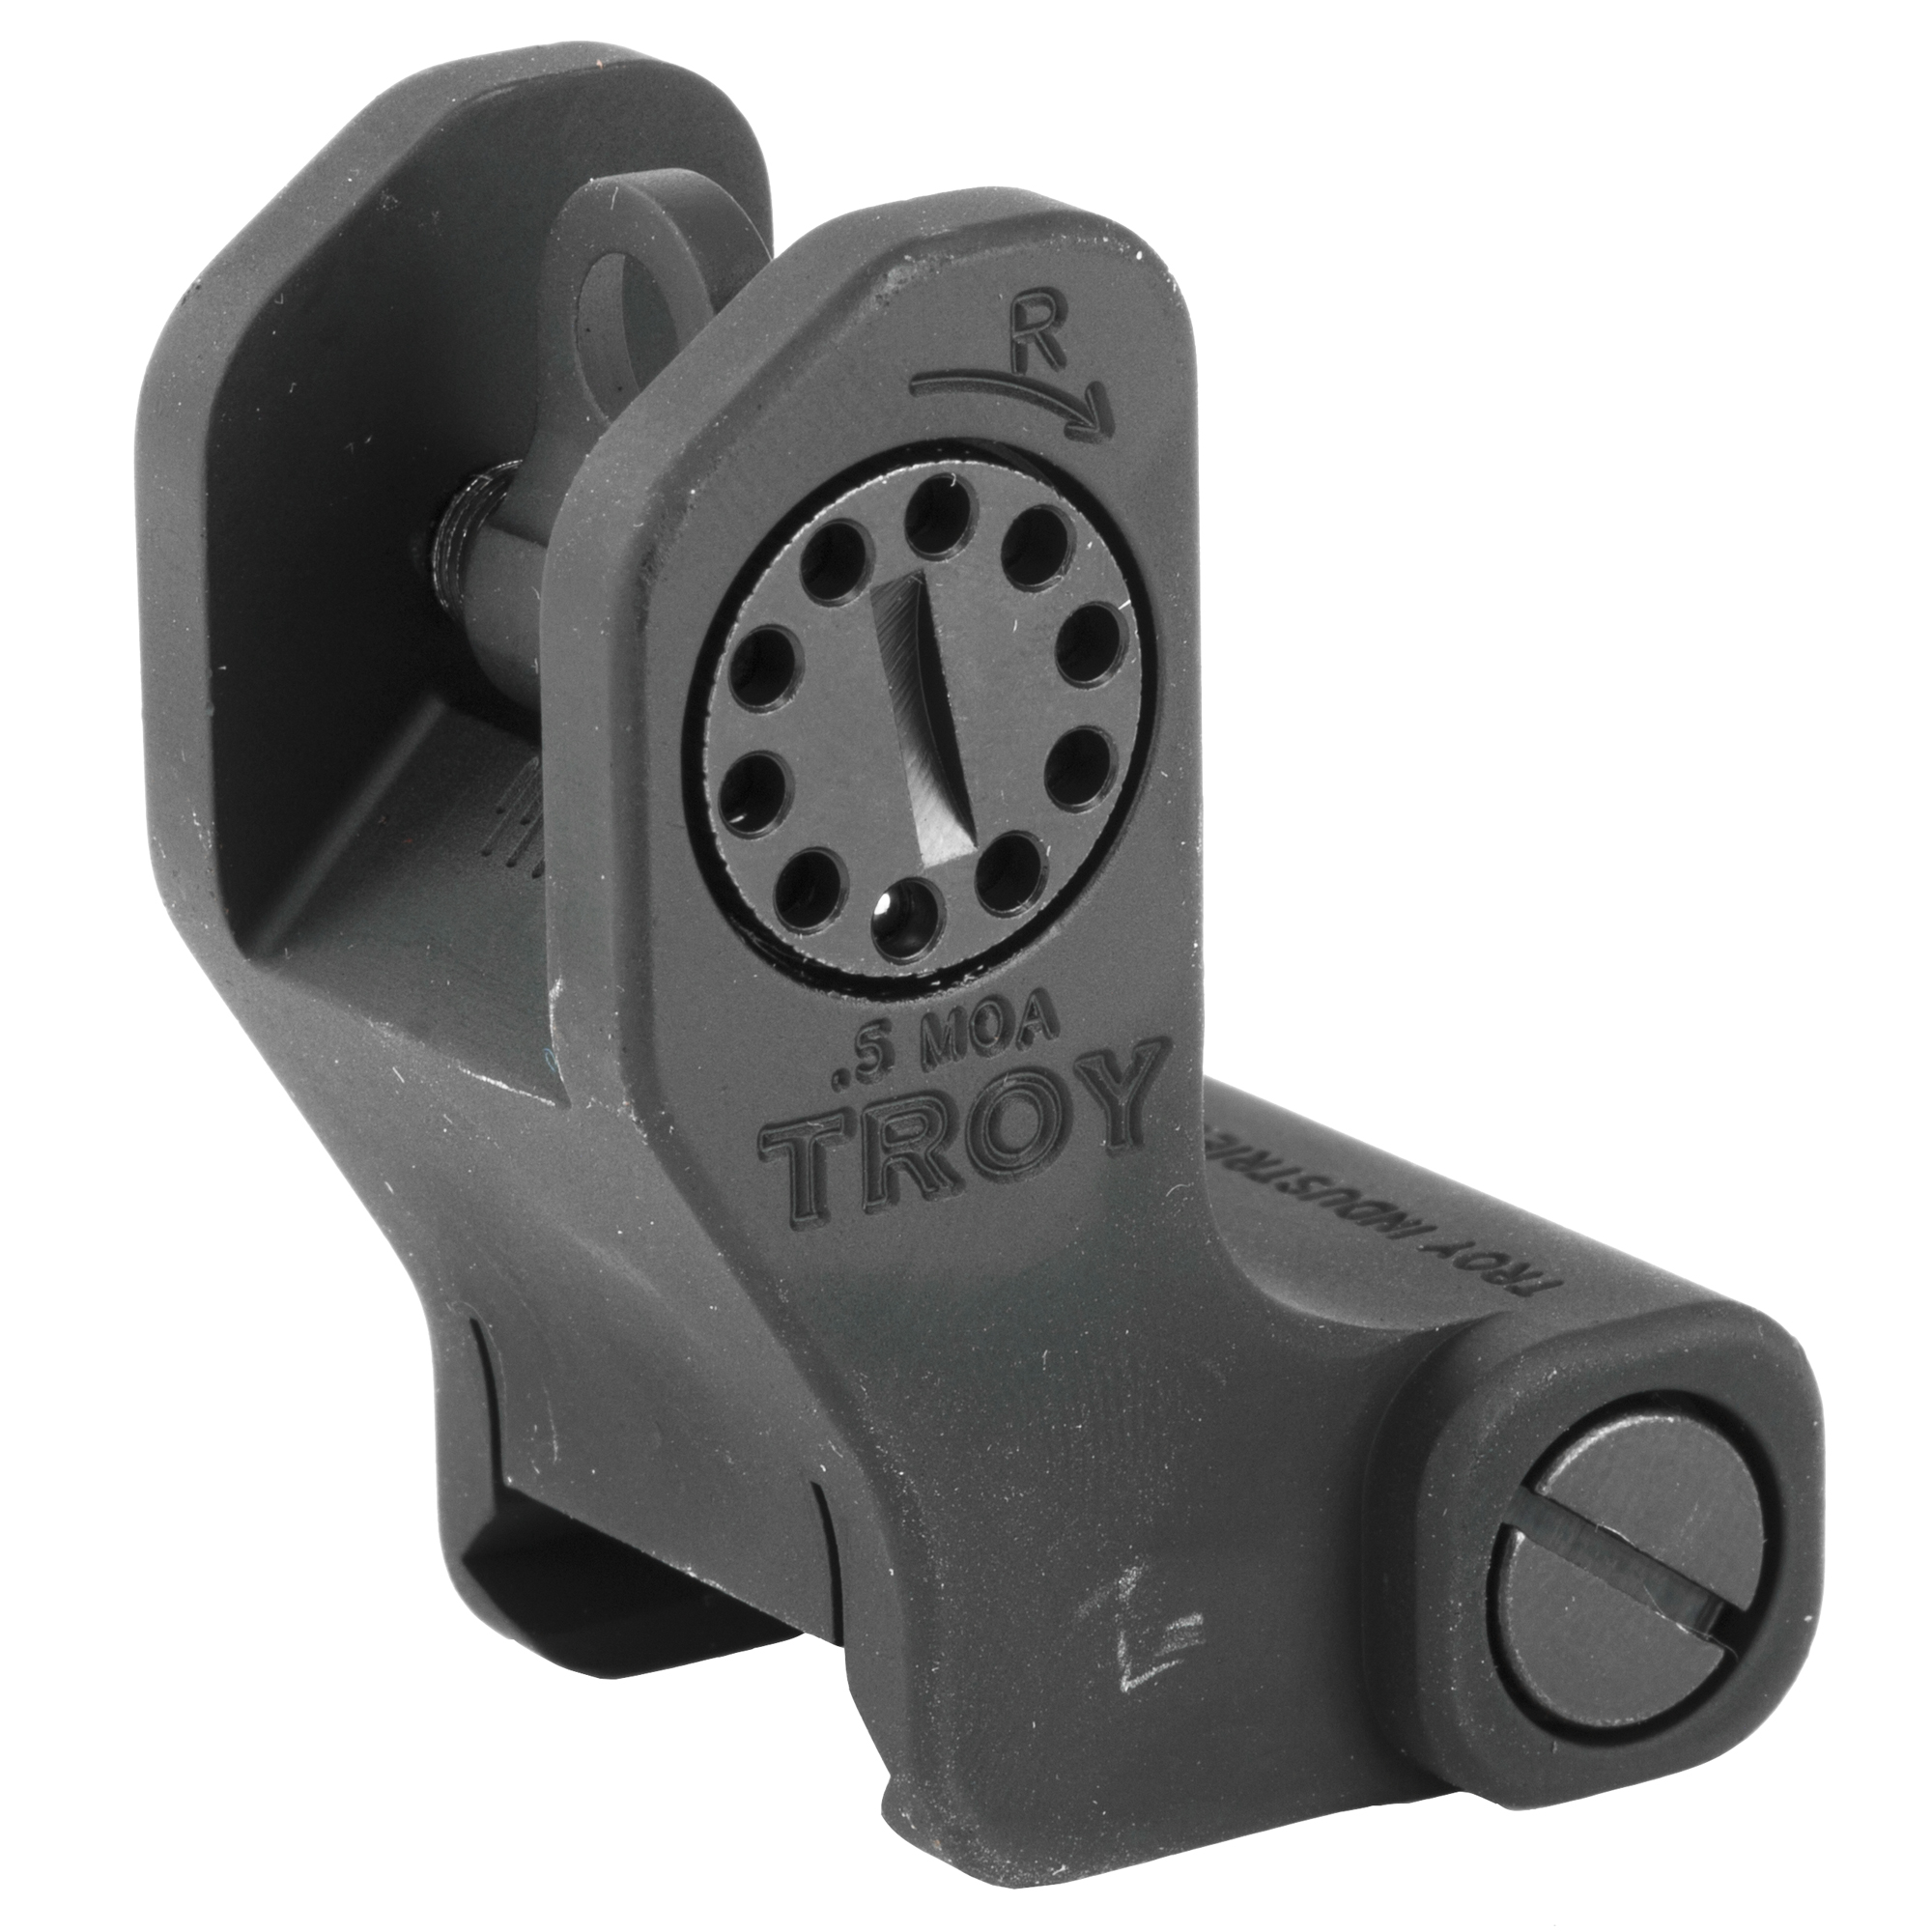 """""""Looking for rock solid stability and dead-on accuracy in a fixed sight? Troy Industries Fixed BattleSights(TM) get the job done. This permanent"""" rail-mounted alternative to a standard A2 sight allows limitless mounting options on all-length rails with a serrated ramp to eliminate glare. Provides a continuous zero"""" unflinching durability and peace of mind. The Troy Rear Fixed Rail Sight is designed to work on same plane rail systems only. Will not work with a railed gas block that is higher or lower than the receiver."""